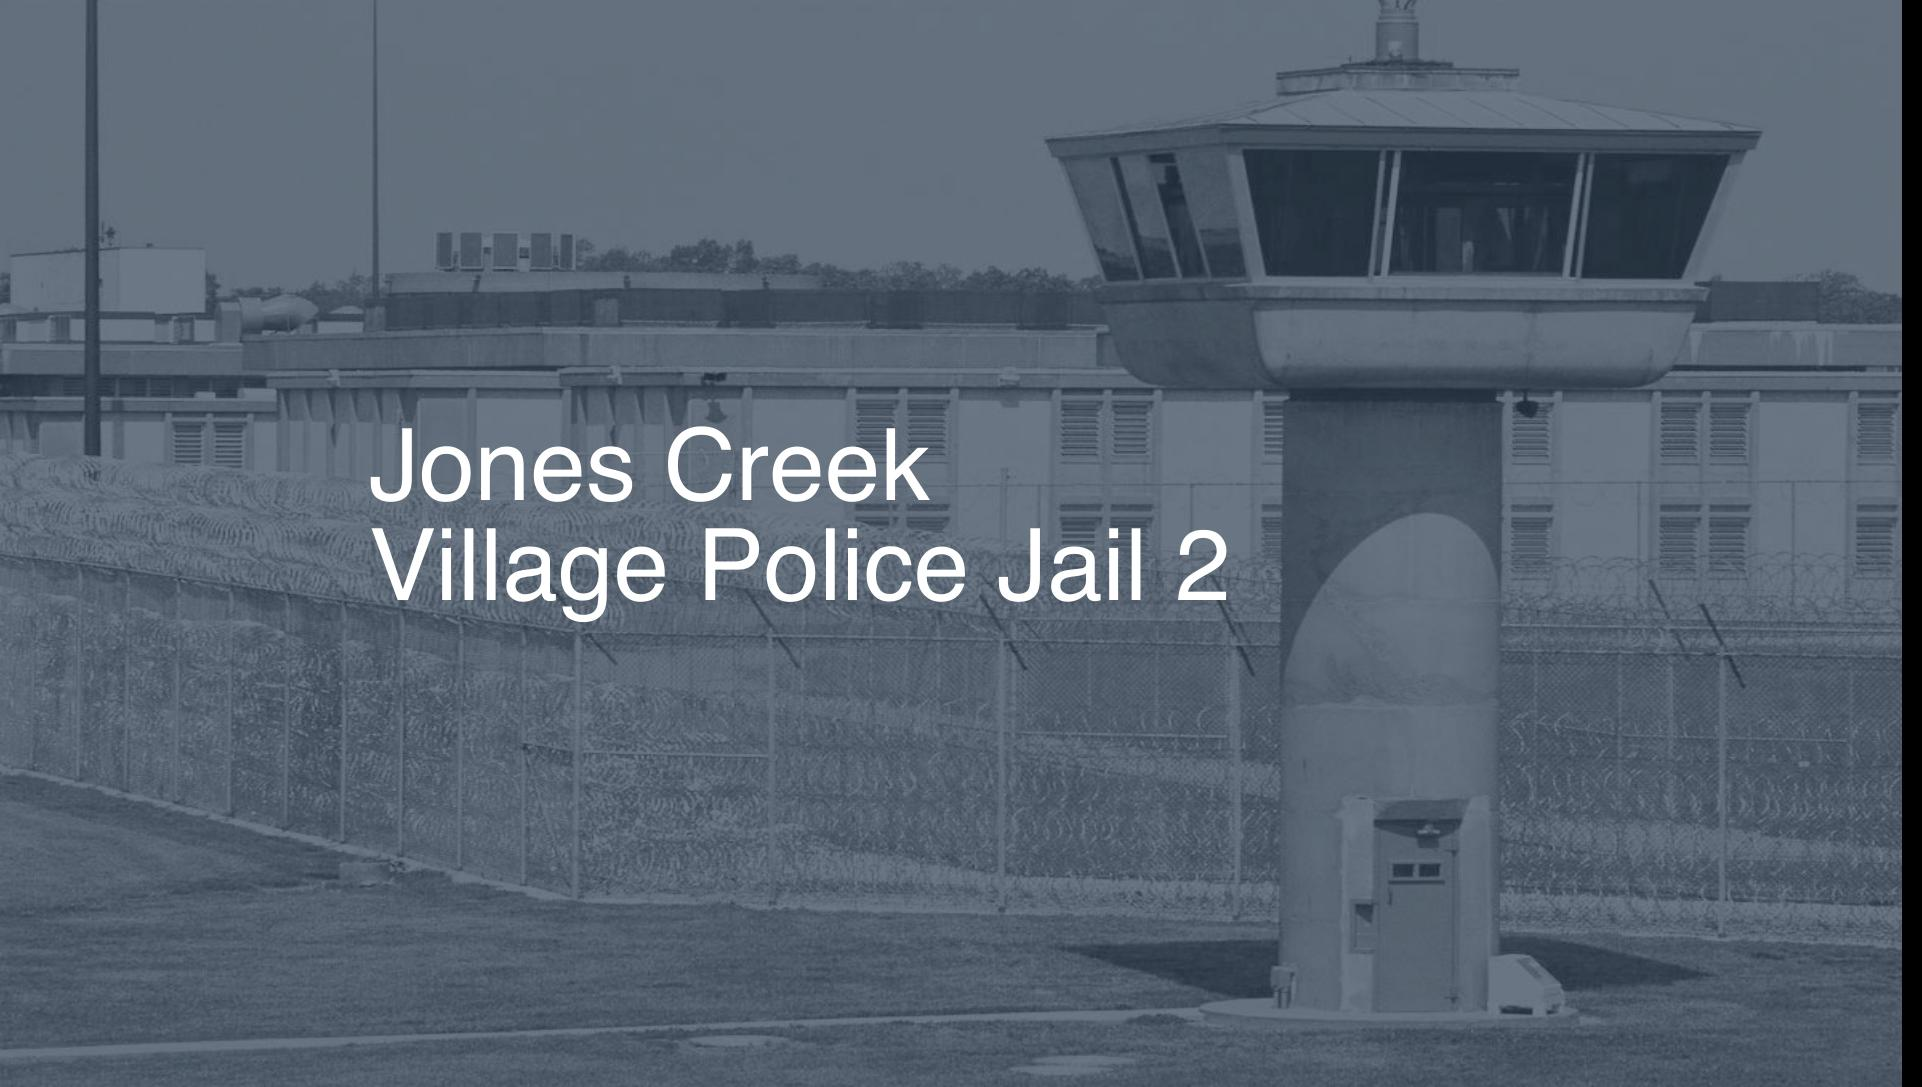 Jones Creek Village Police Jail correctional facility picture